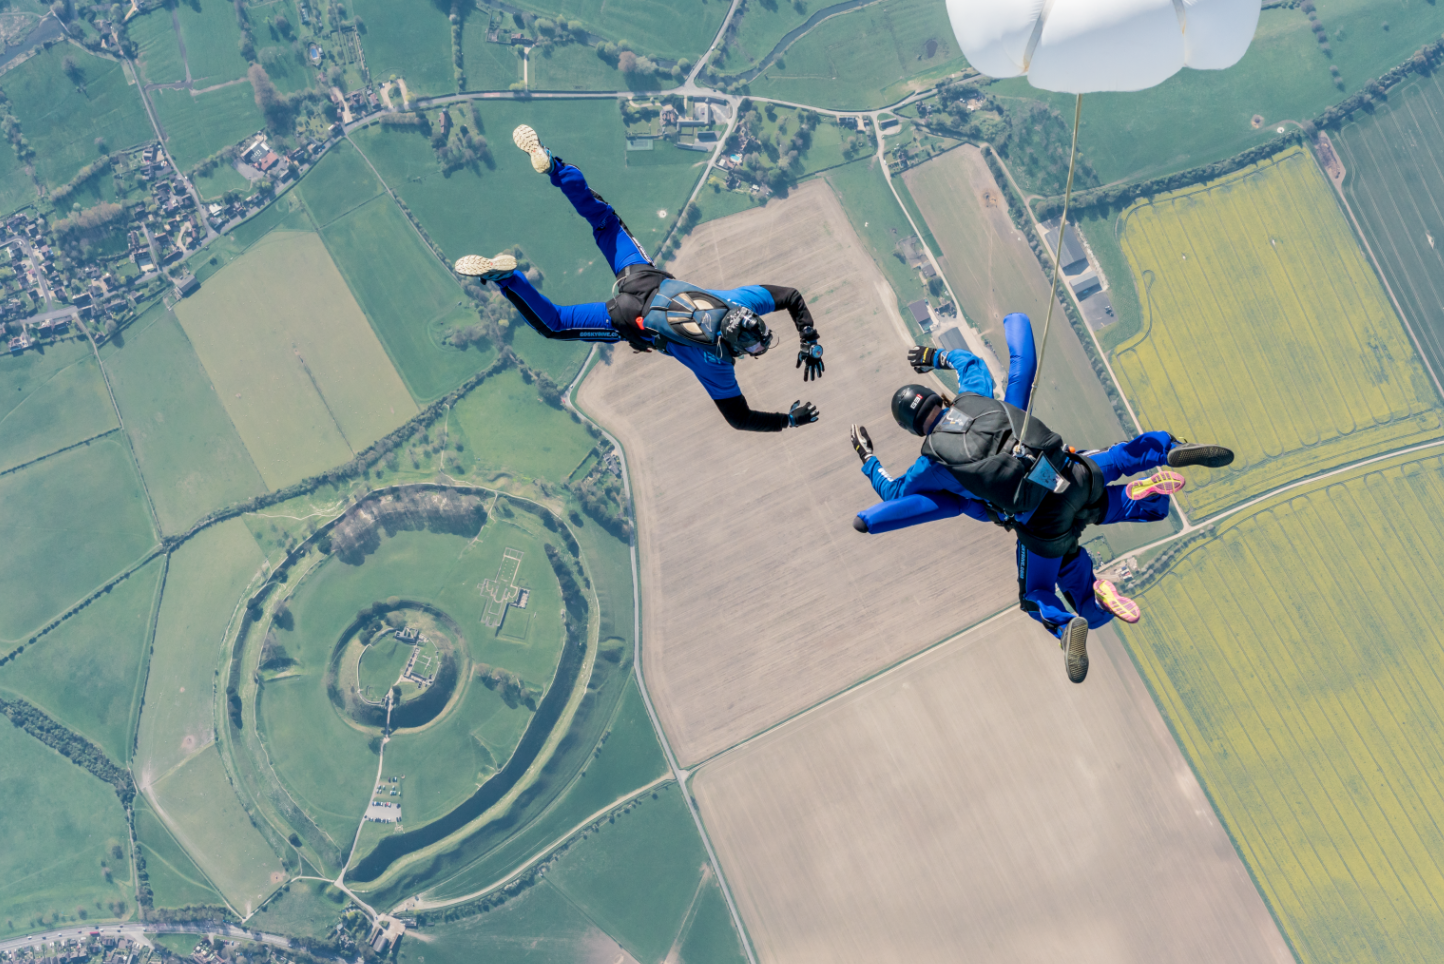 How do you become a tandem skydiving instructor? - GoSkydive